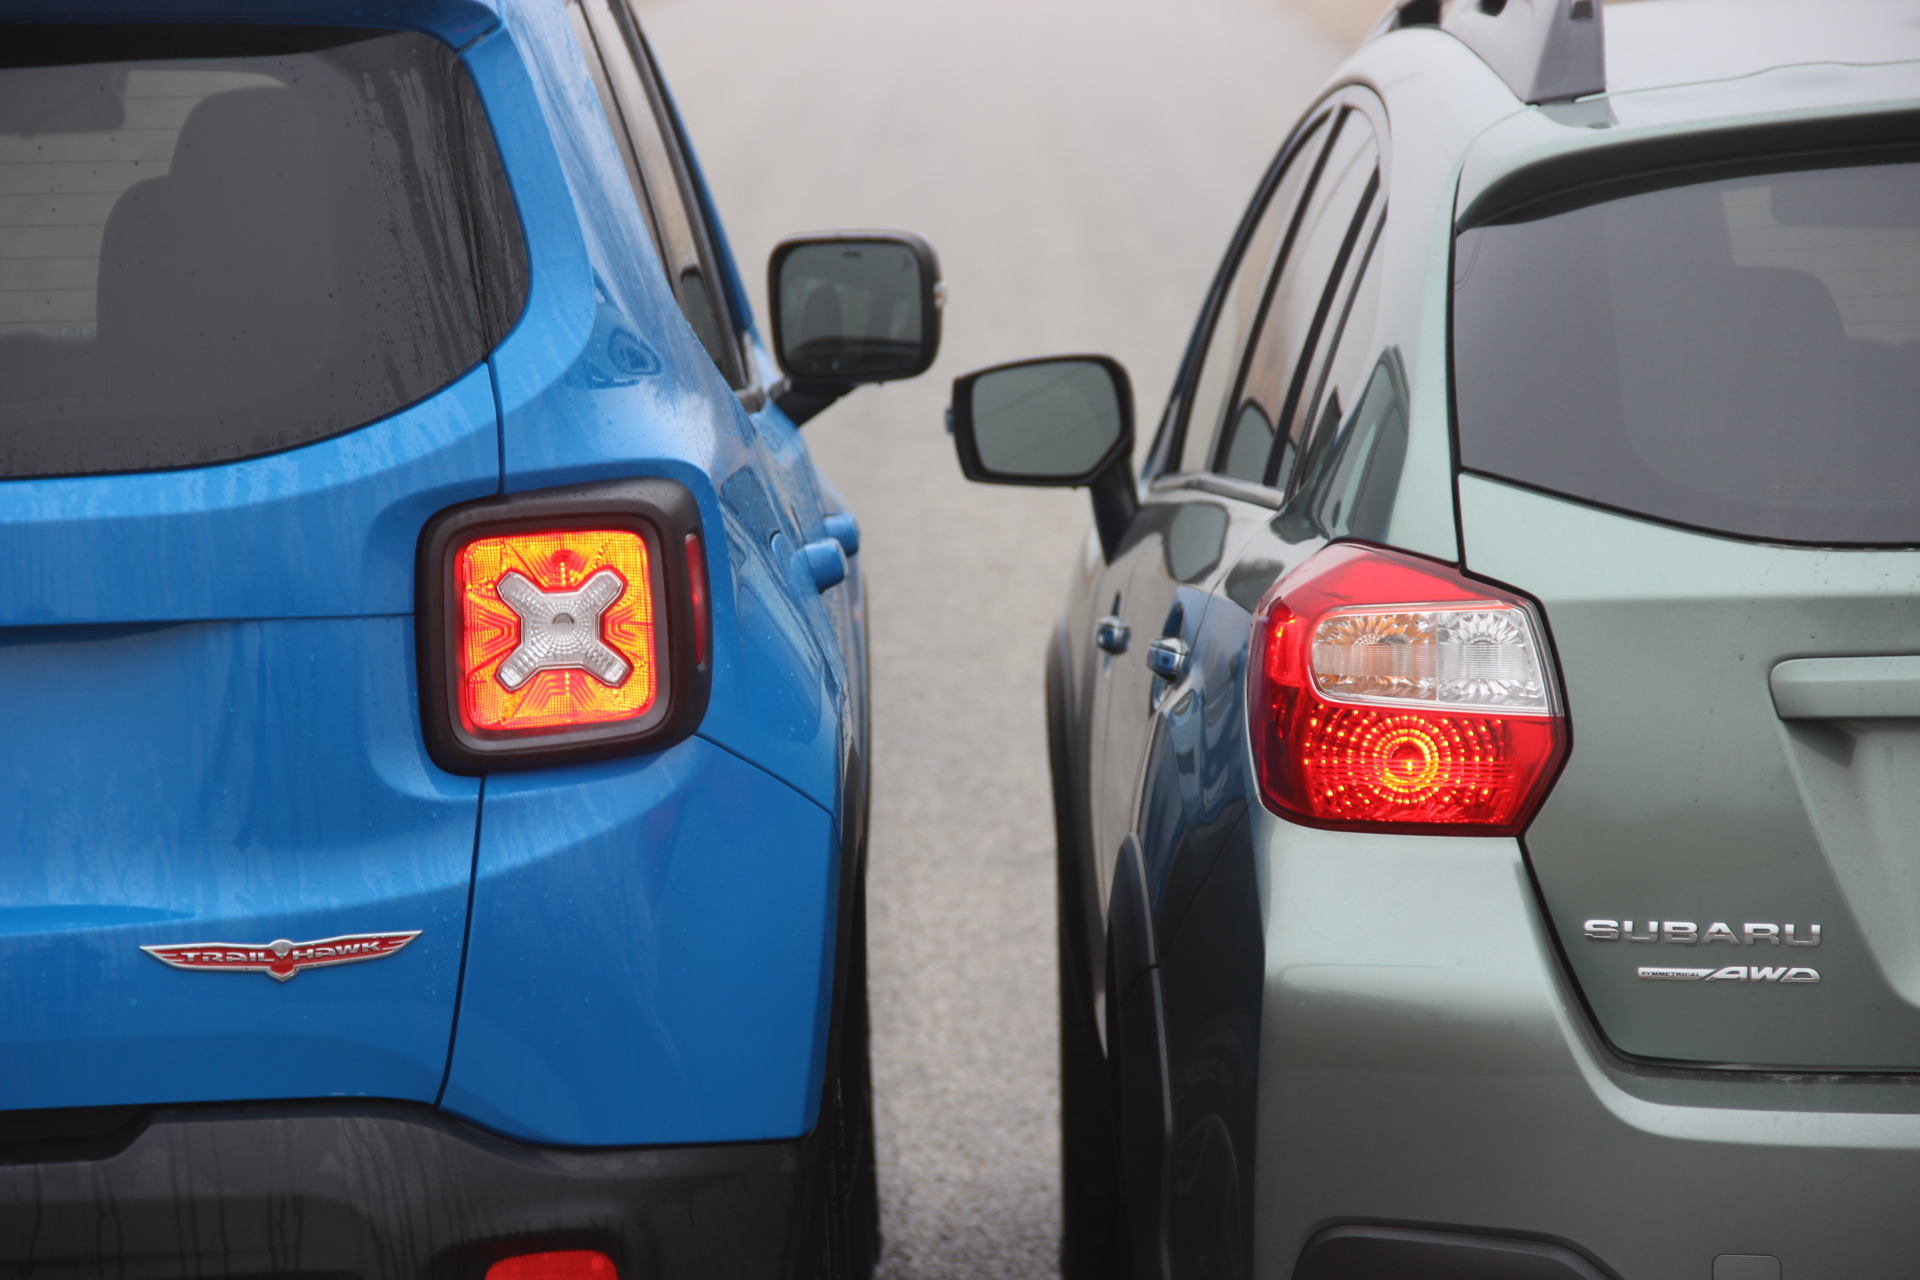 Jeep-Renegade-vs-Subaru-XV-Crosstrek-6 Great Description About Jeep Renegade Trunk with Extraordinary Pictures Cars Review